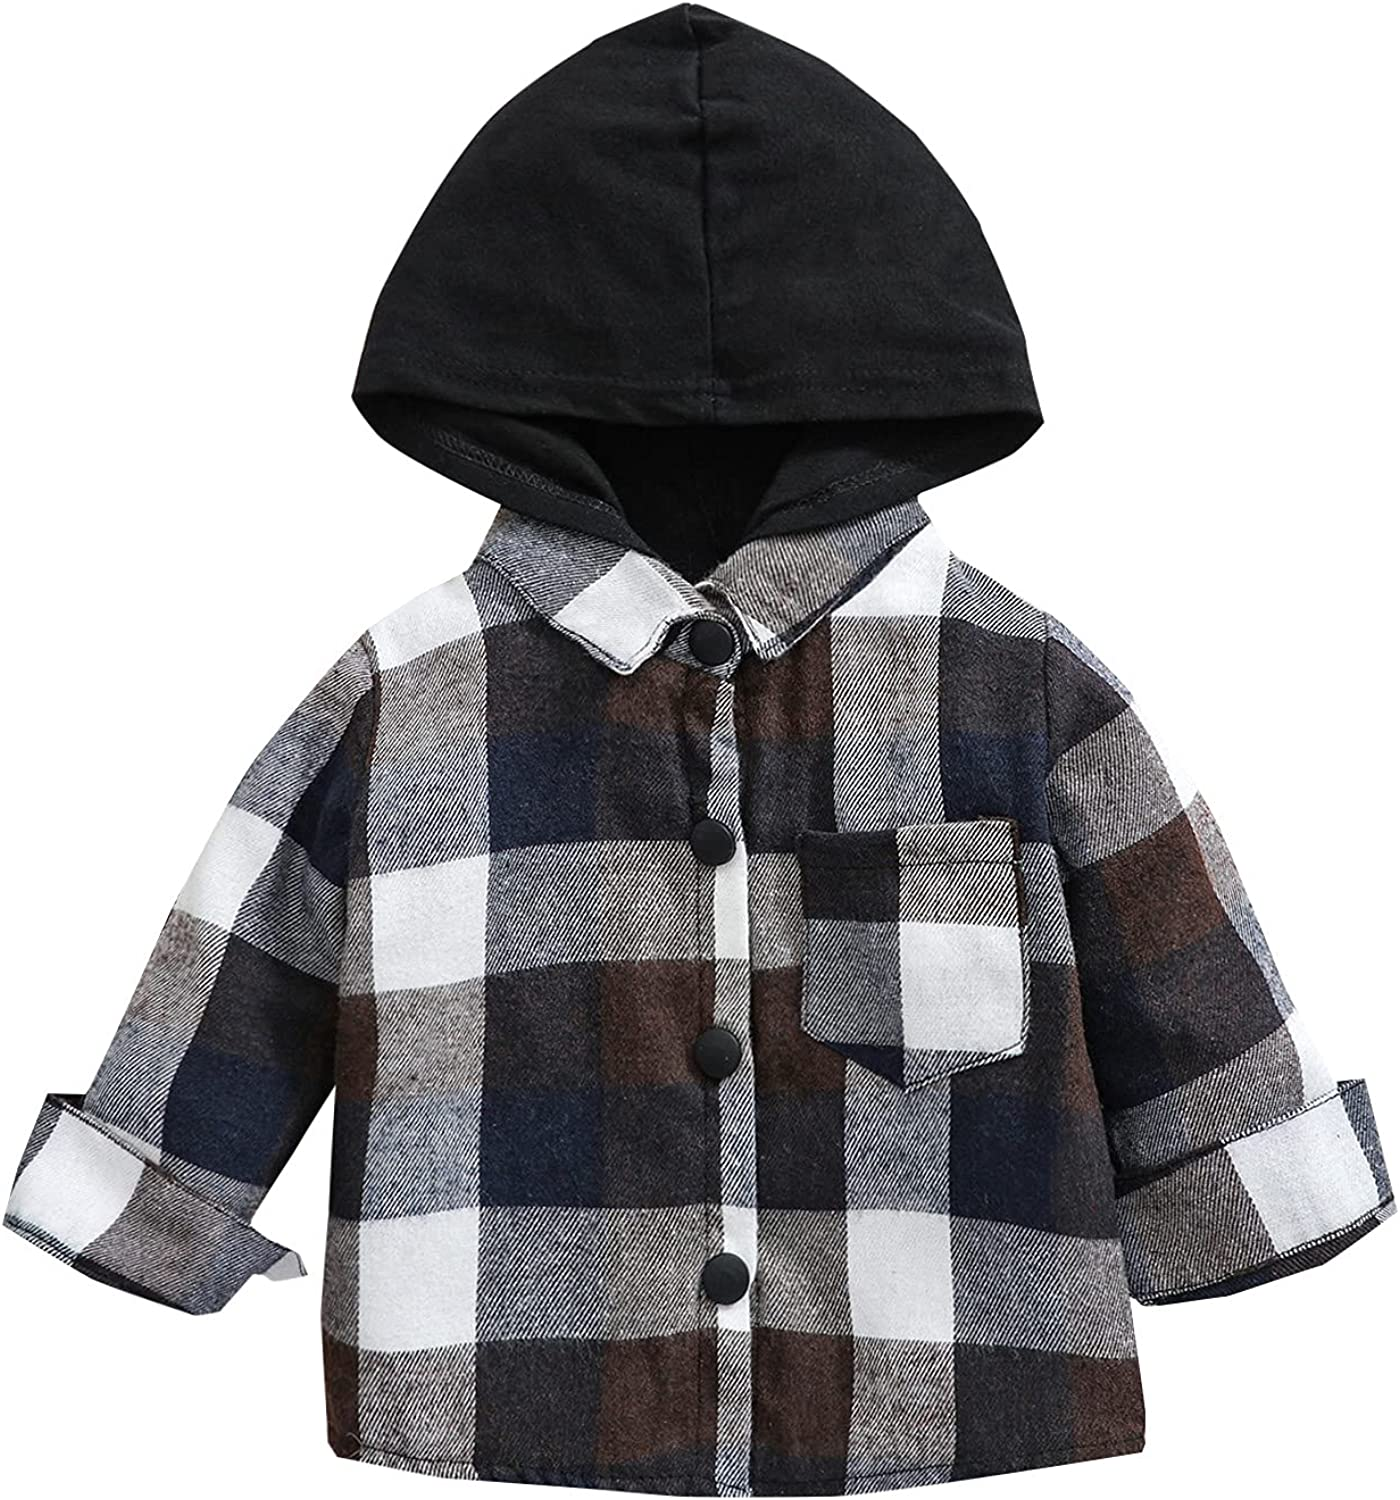 Kids Little Boys Girls Baby Long Sleeve Button Down Hooded Plaid Shirt Red Plaid Flannel Outfits: Clothing, Shoes & Jewelry